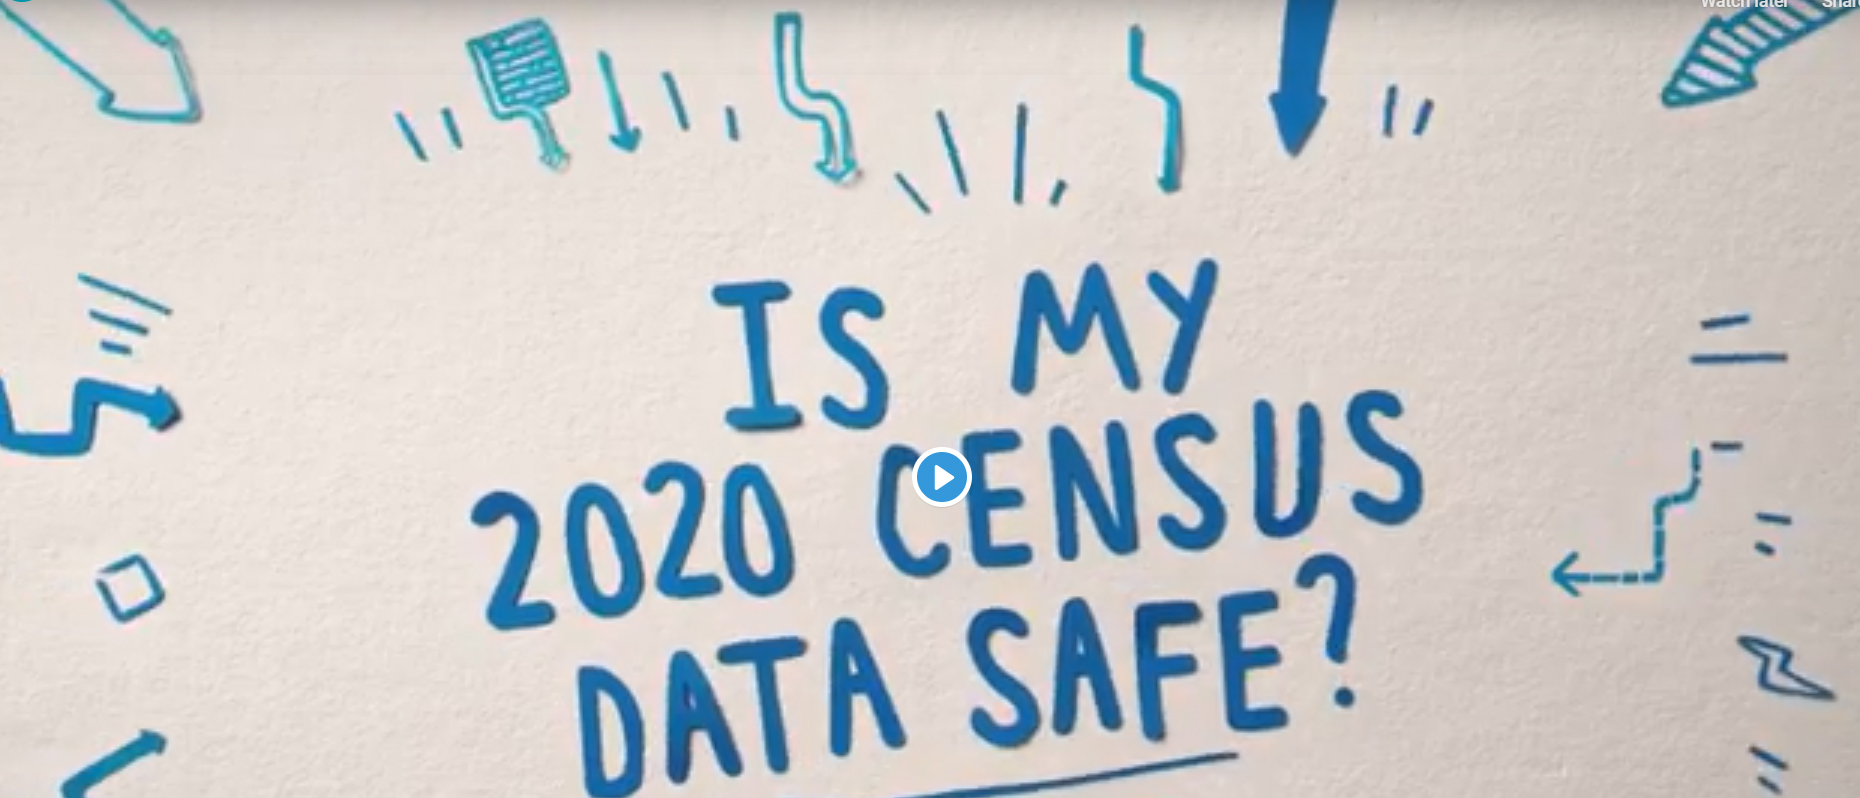 Is My 2020 Census Data Safe